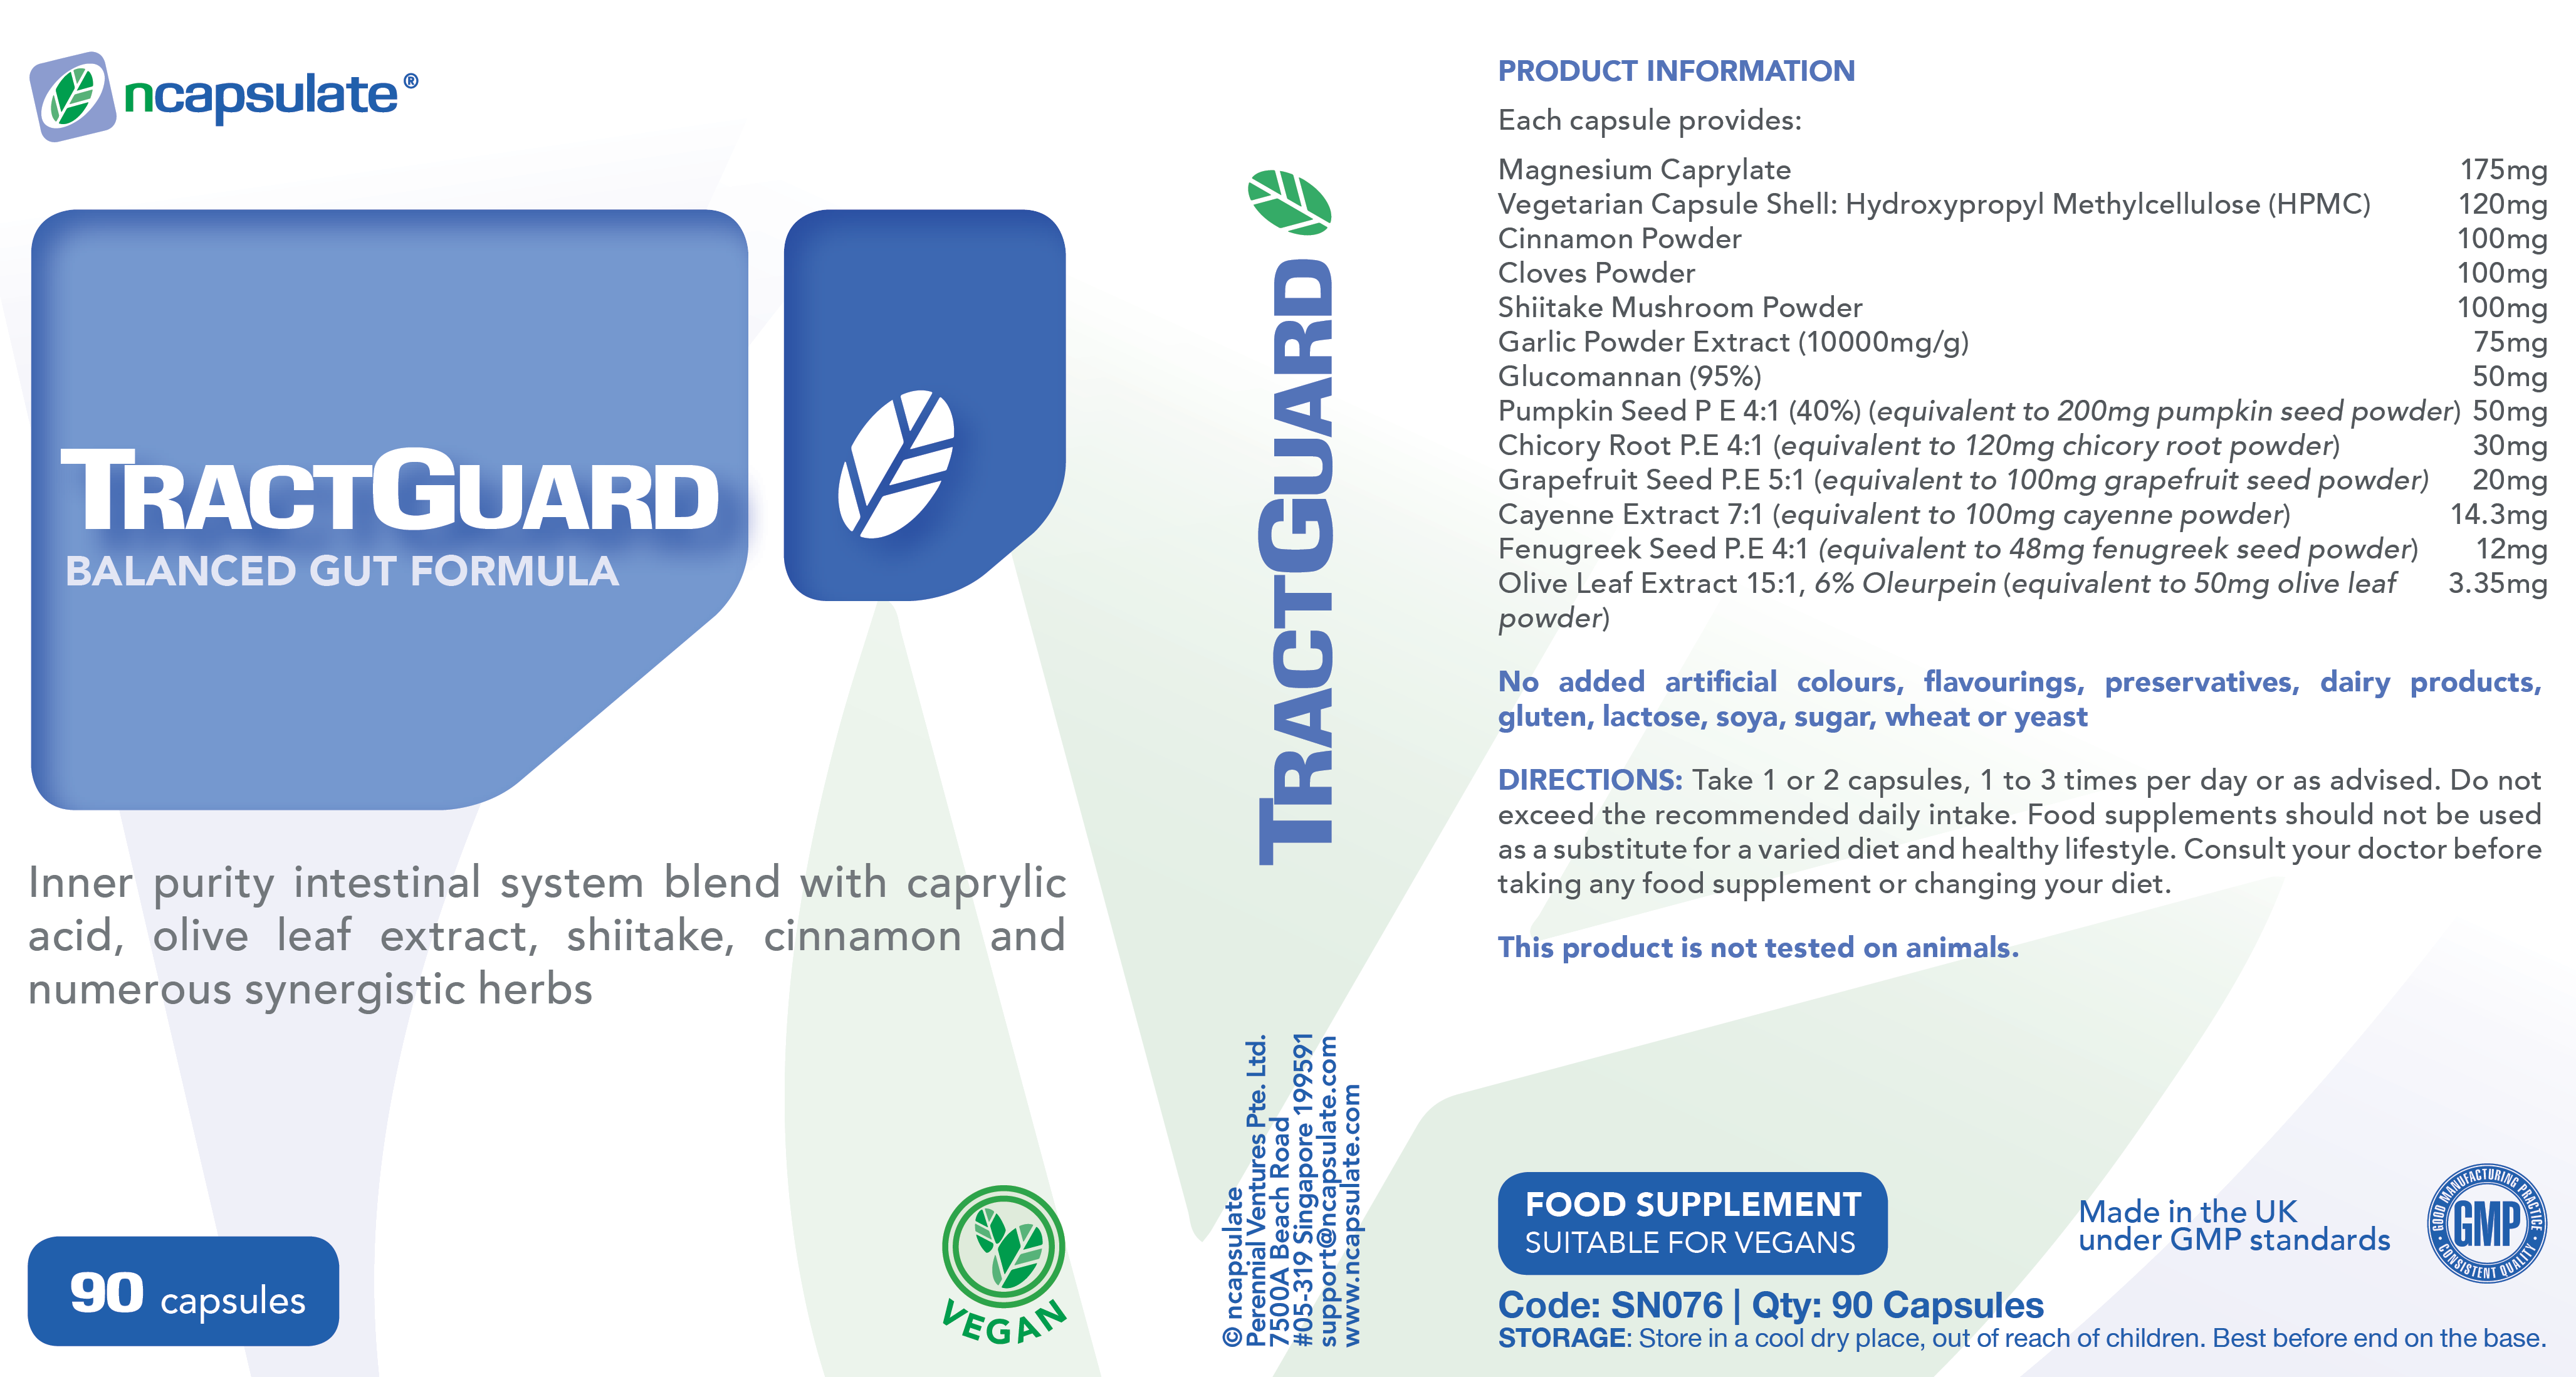 ncapsulate® TRACTGUARD Premium Health Supplement Product Label